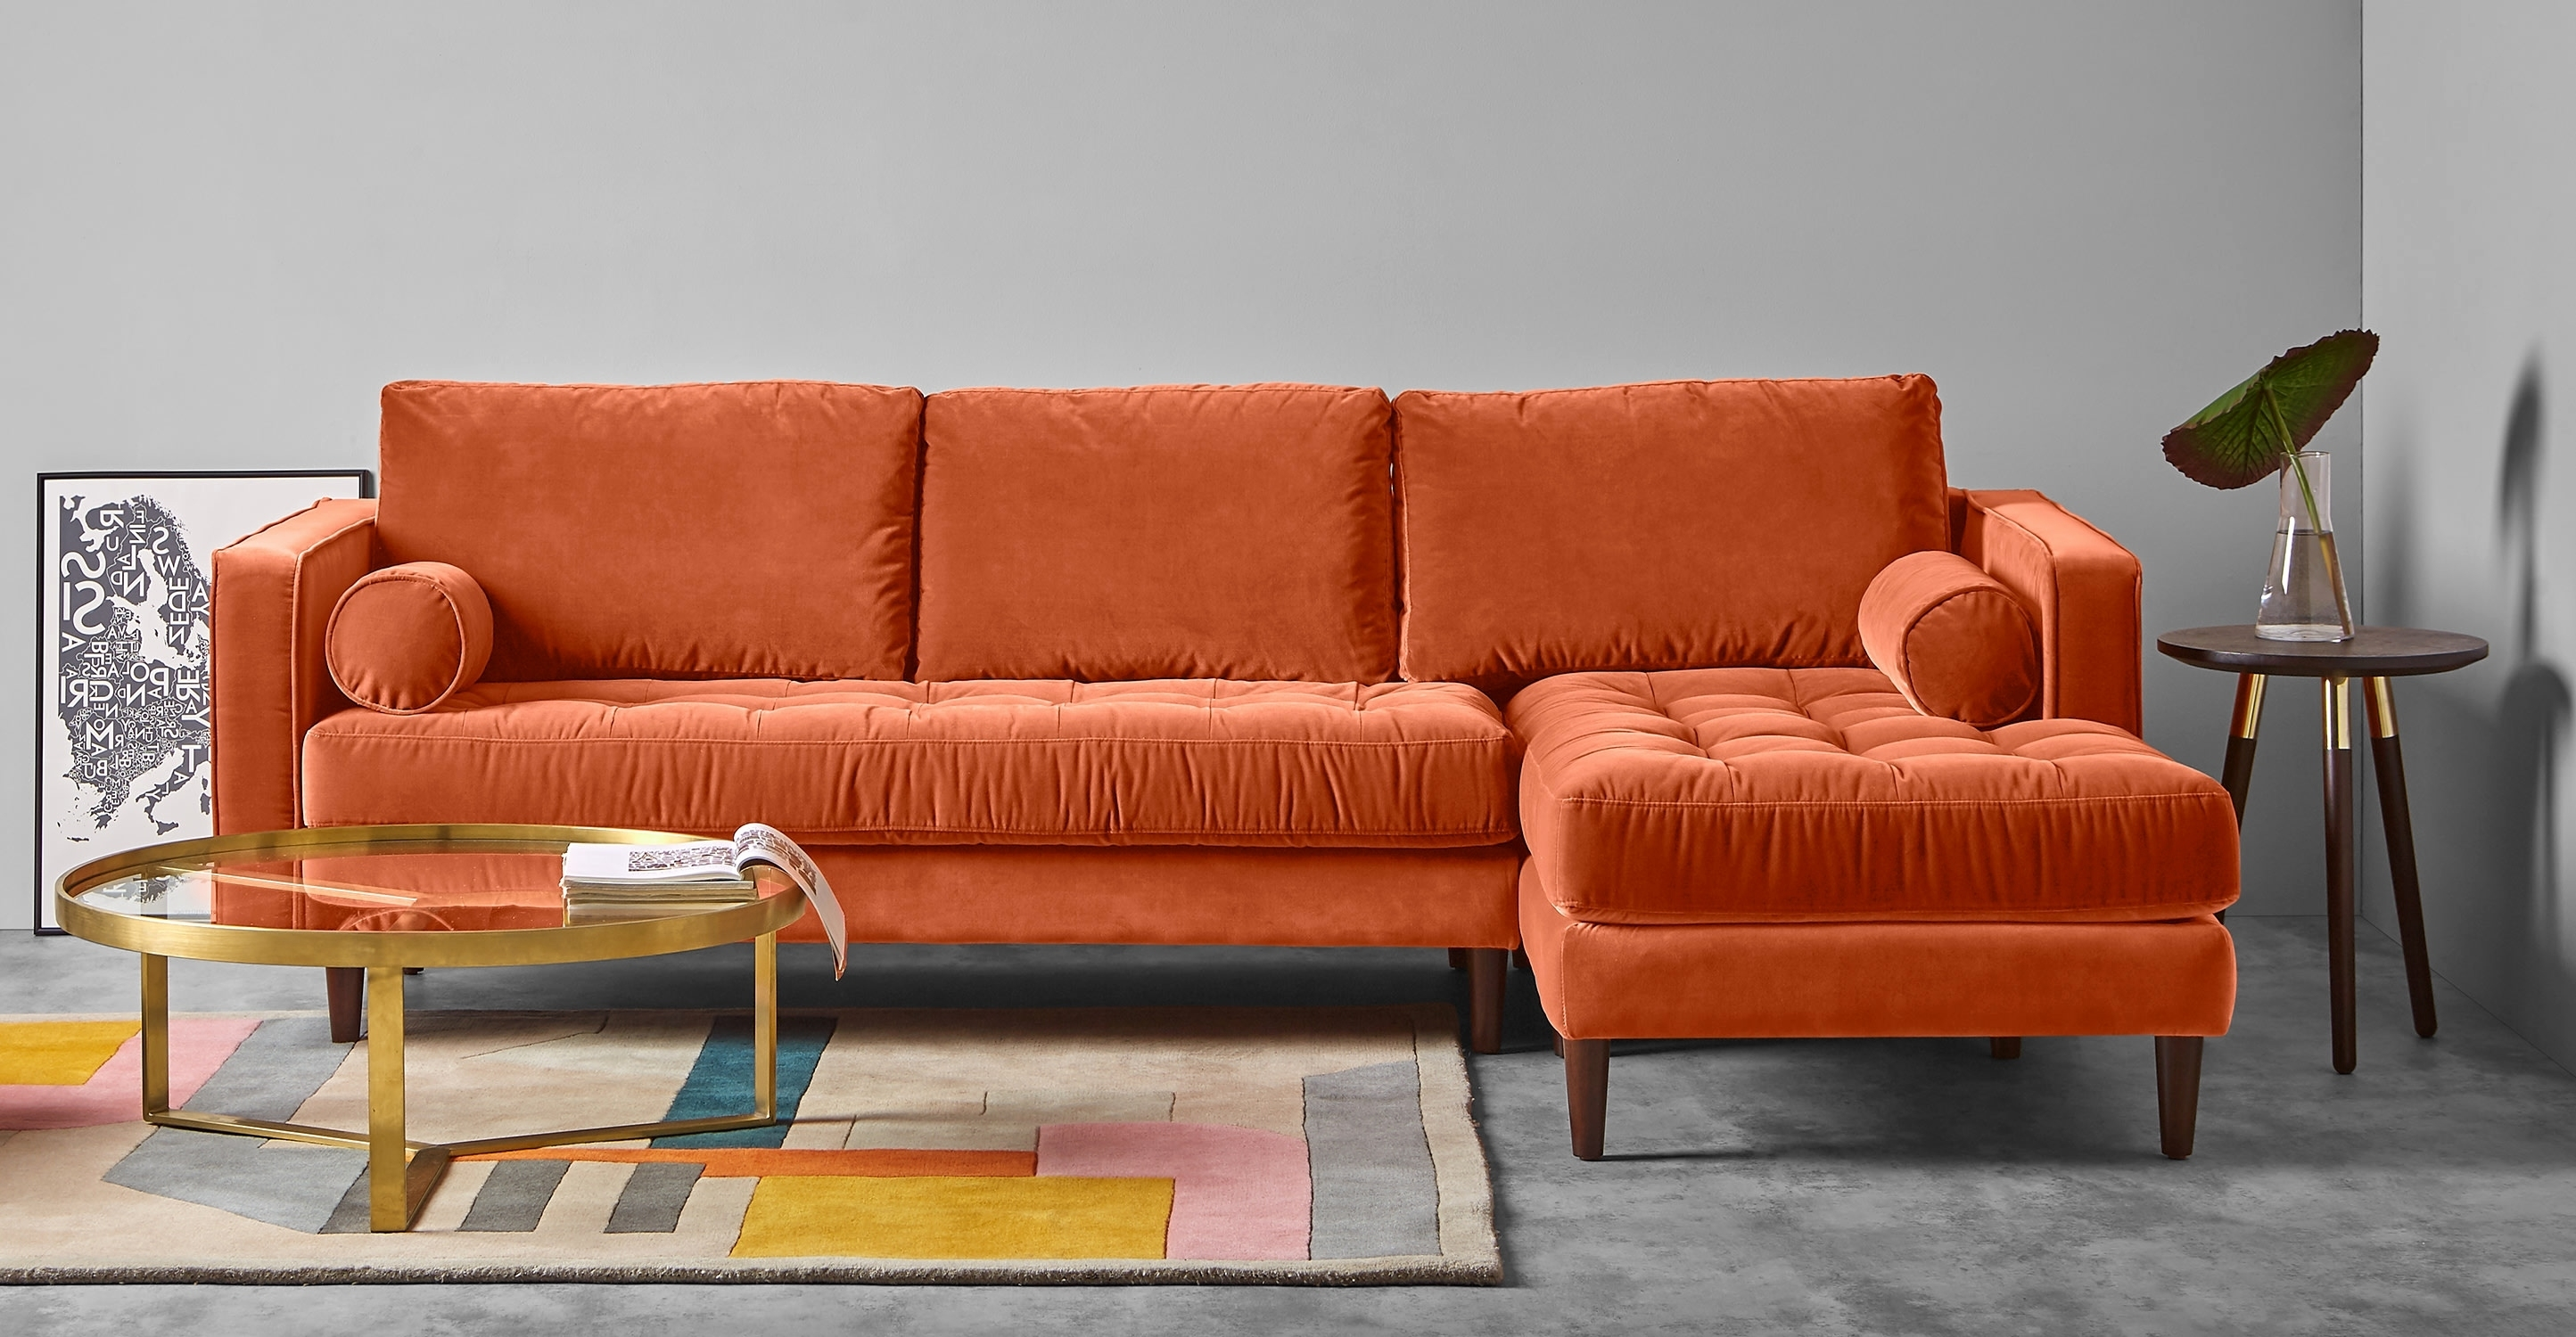 Leather Sectional Sofas Orange County Ca | Ezhandui intended for Orange County Ca Sectional Sofas (Image 6 of 10)